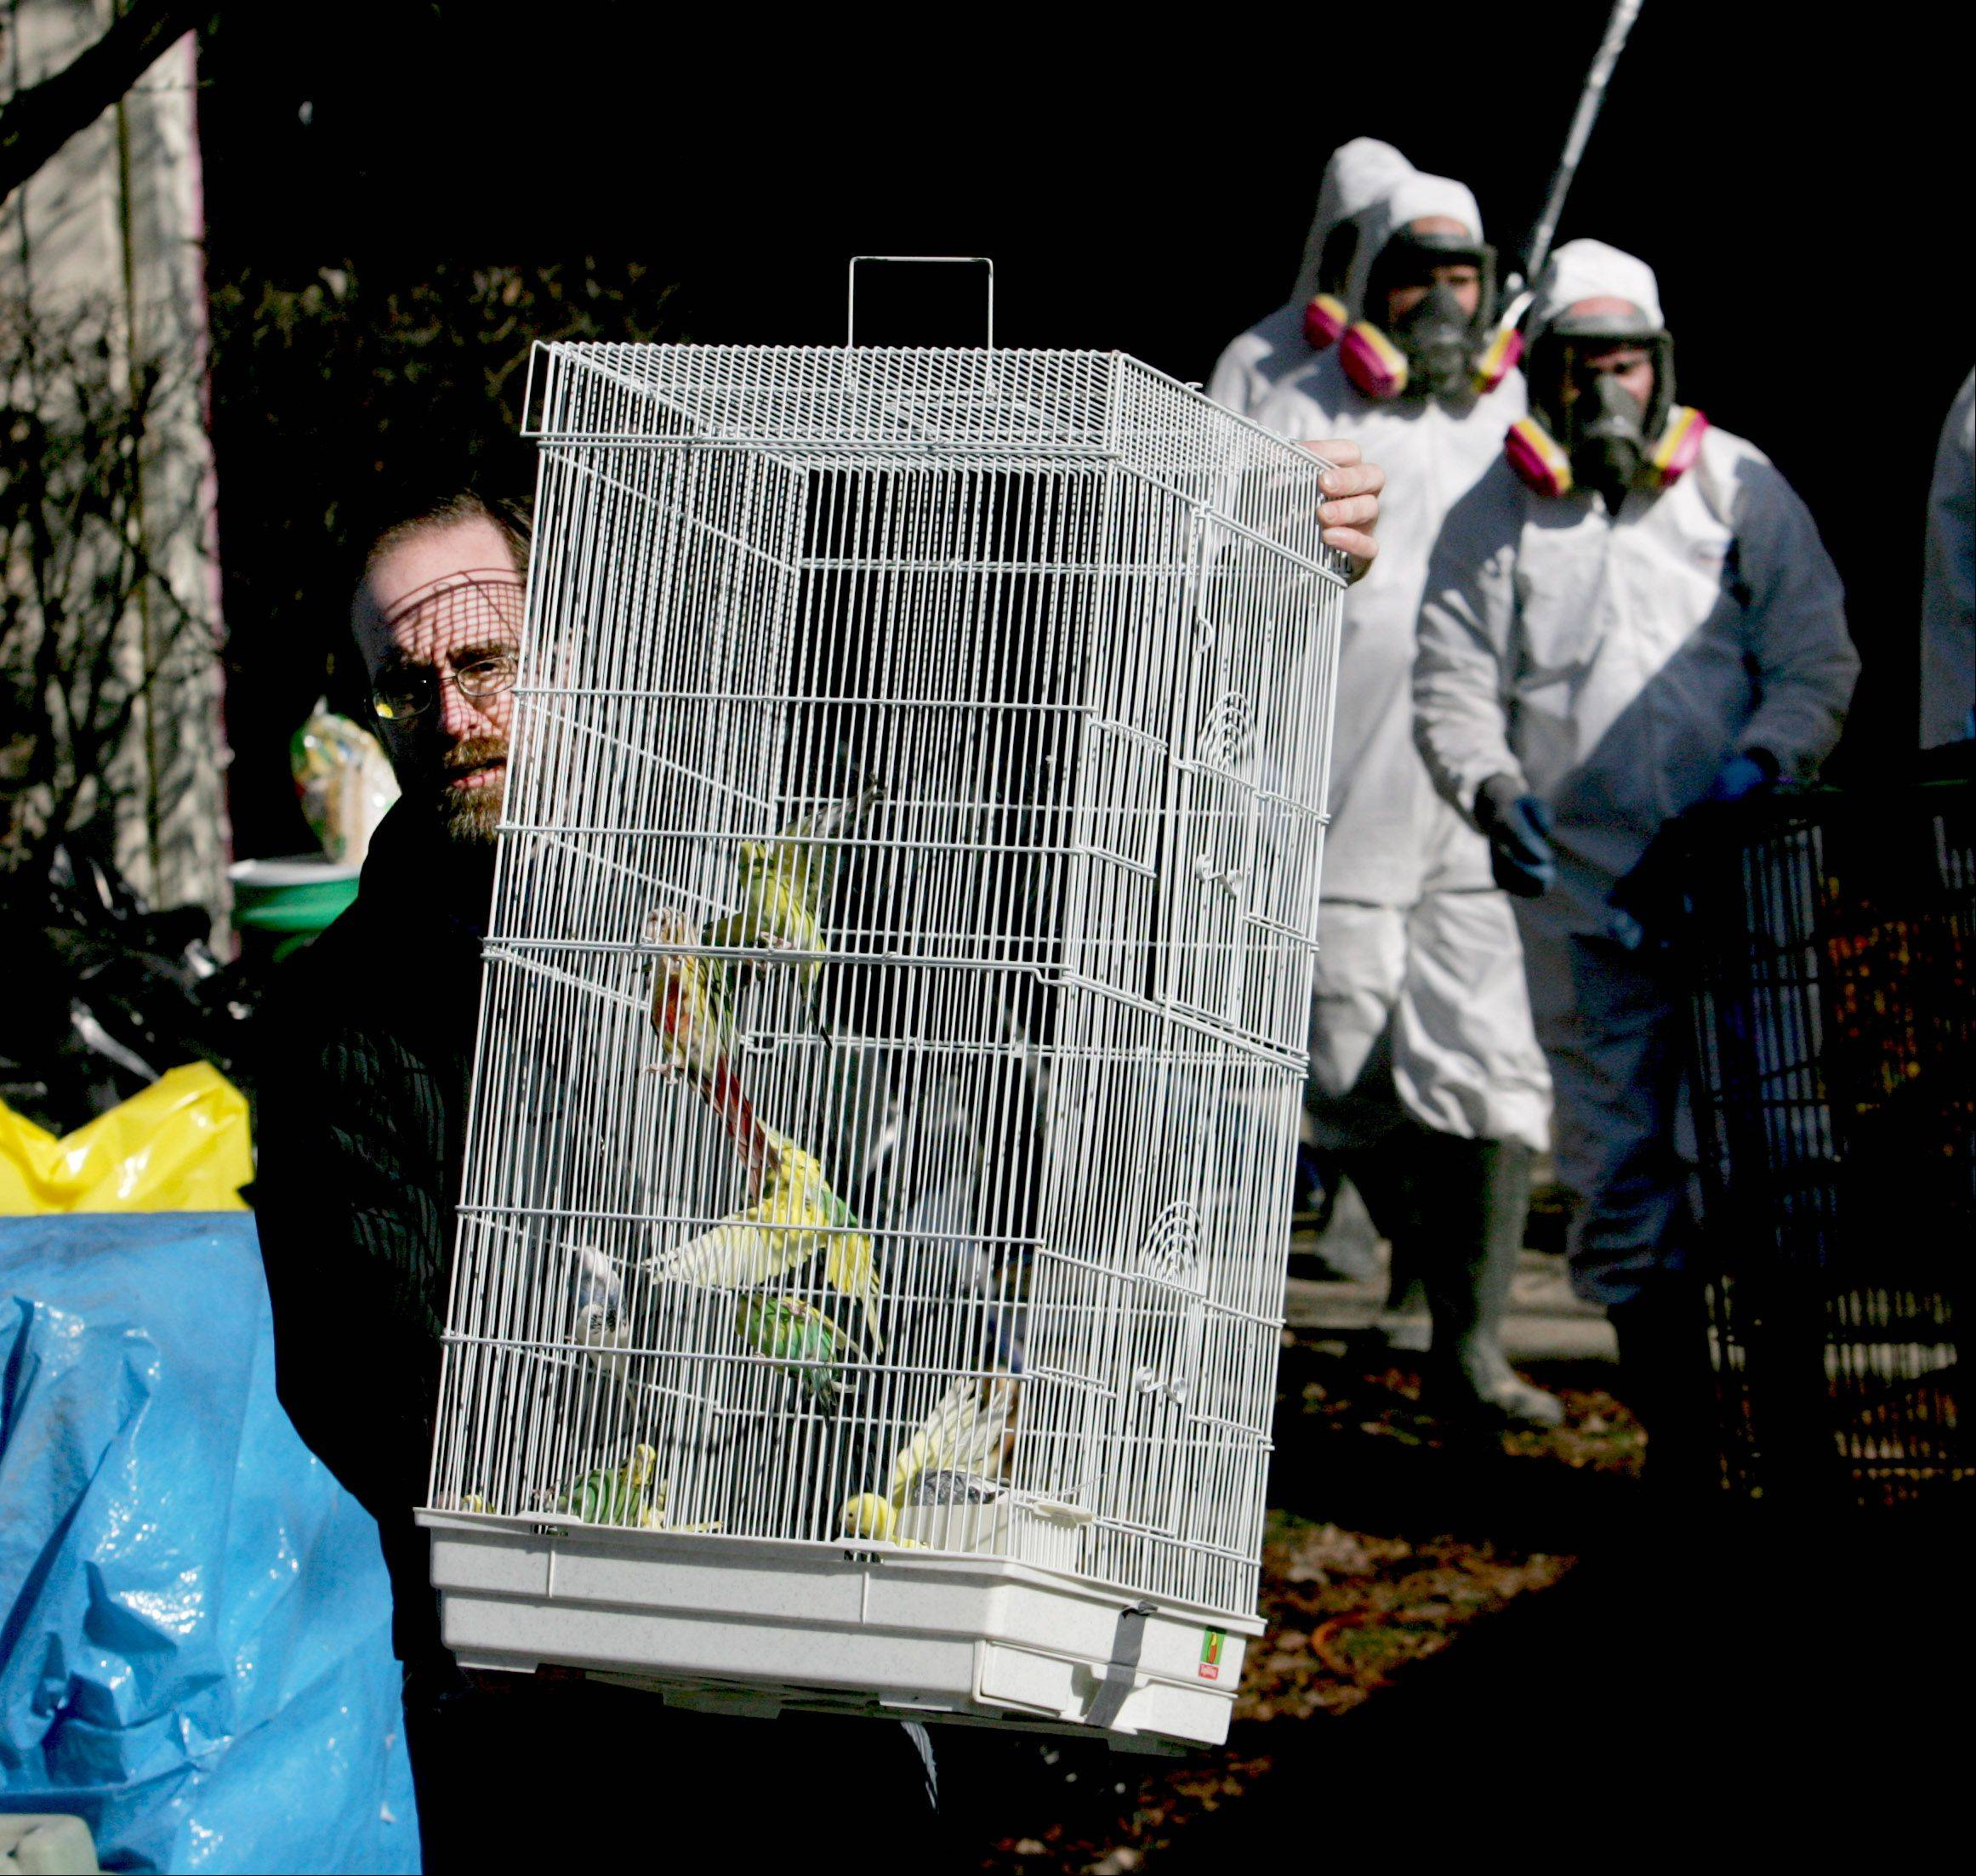 George Hallenbeck with the Greater Chicago Cage Bird Club, carries a cage of birds that were taken from a house on the 200 block of Shadybrook Lane.